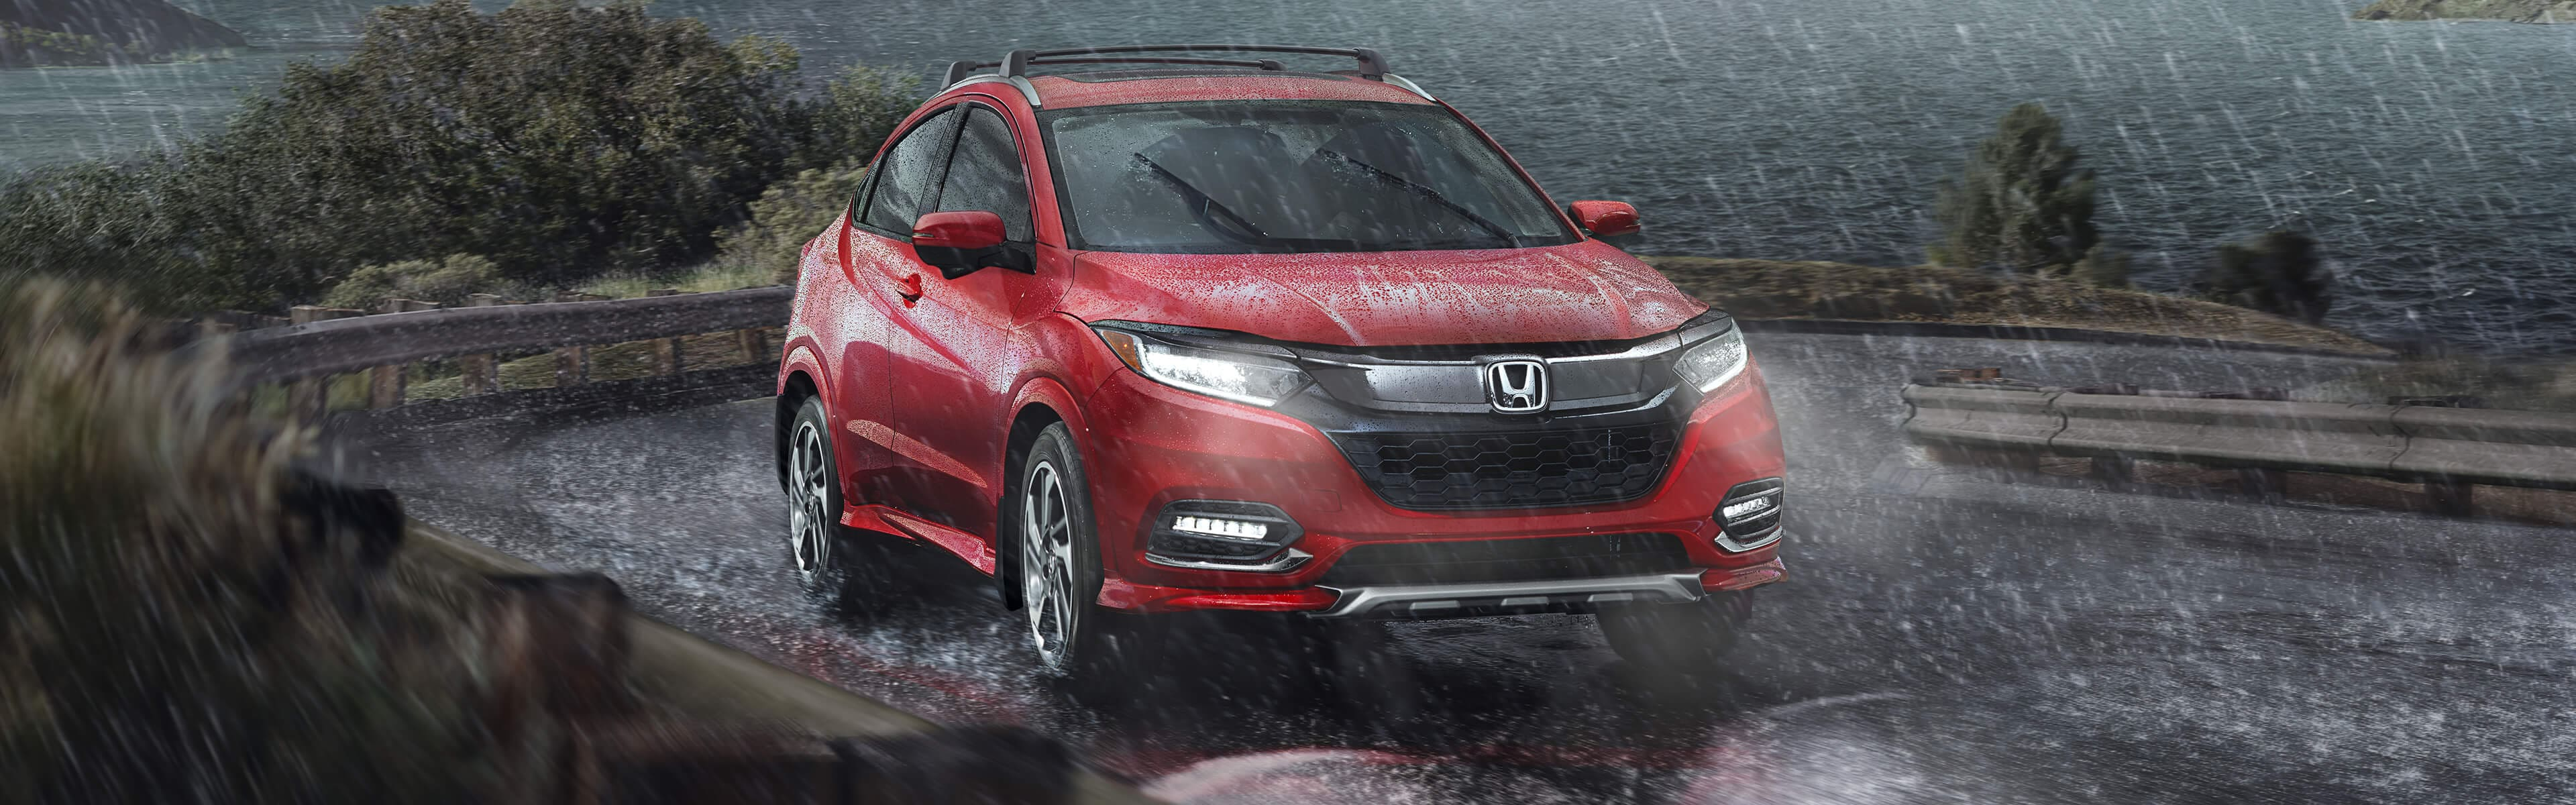 Image of 2019 HR-V